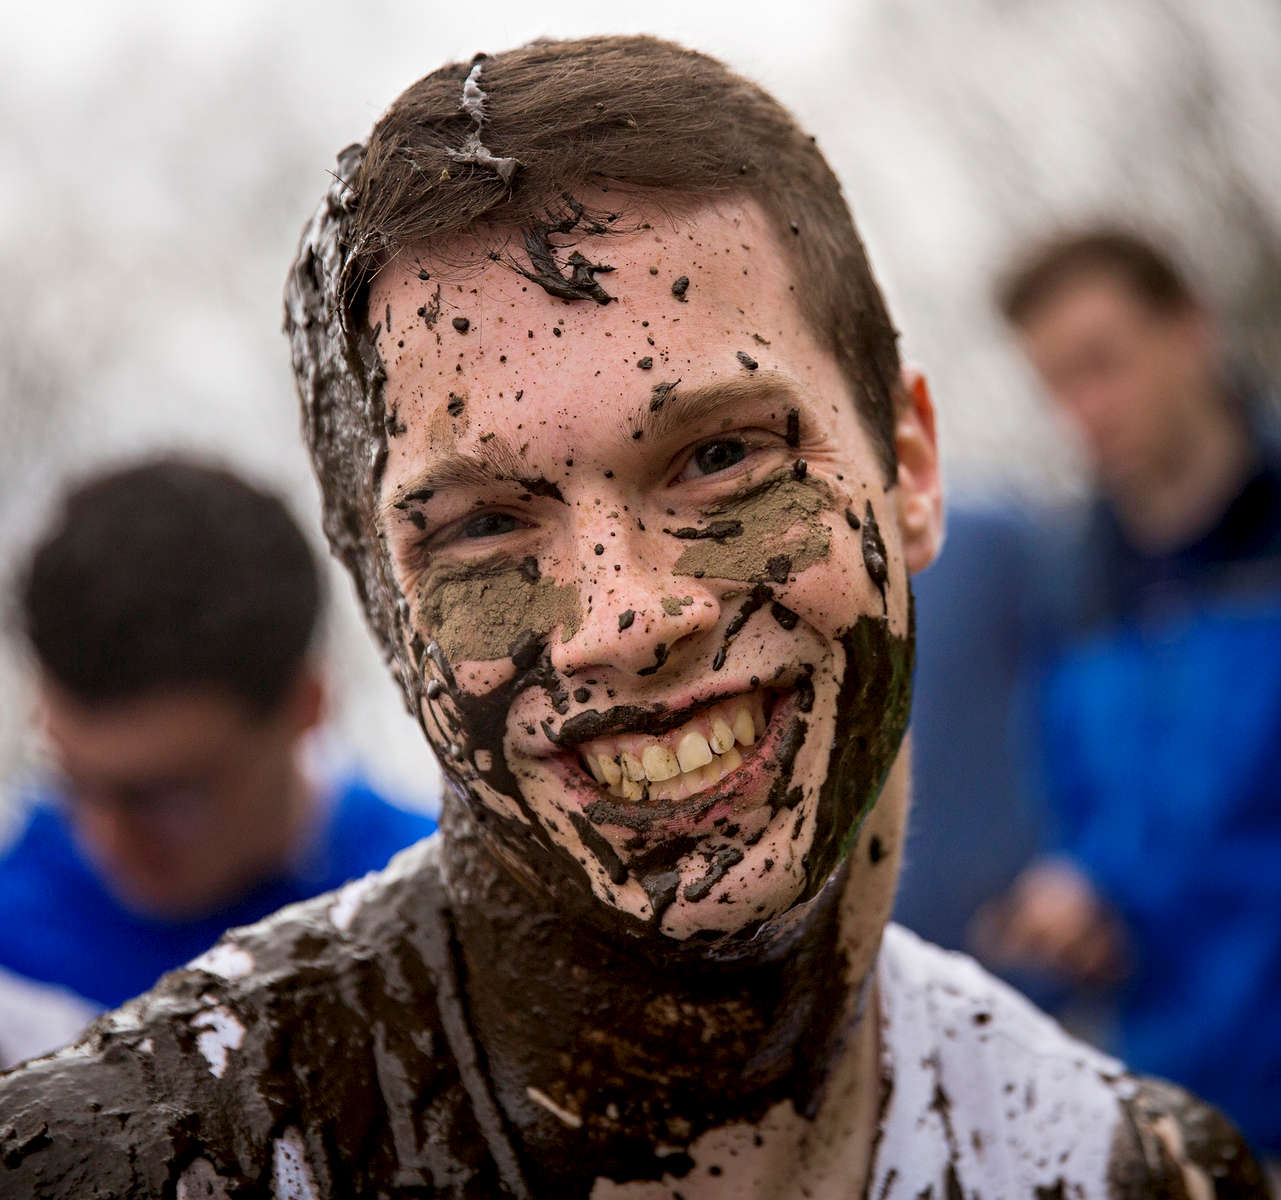 Students take part in the annual OOZeball tournament Saturday, April 22, 2017 in Storrs.